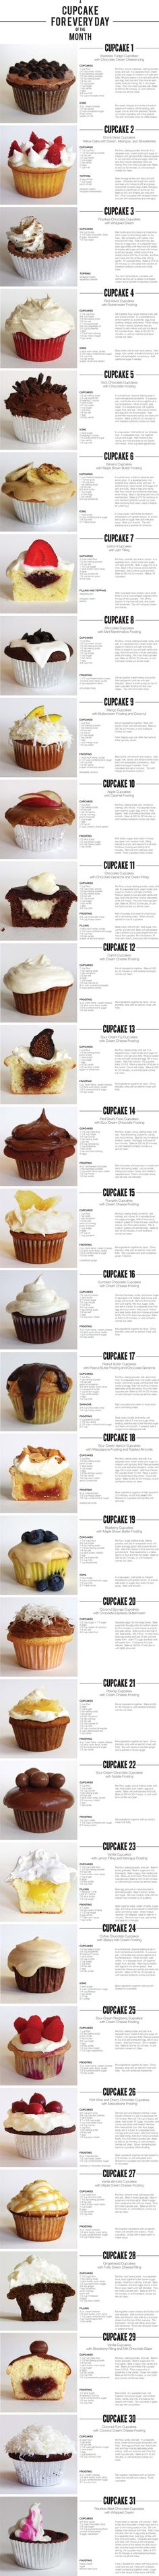 30 Cupcake Recipes